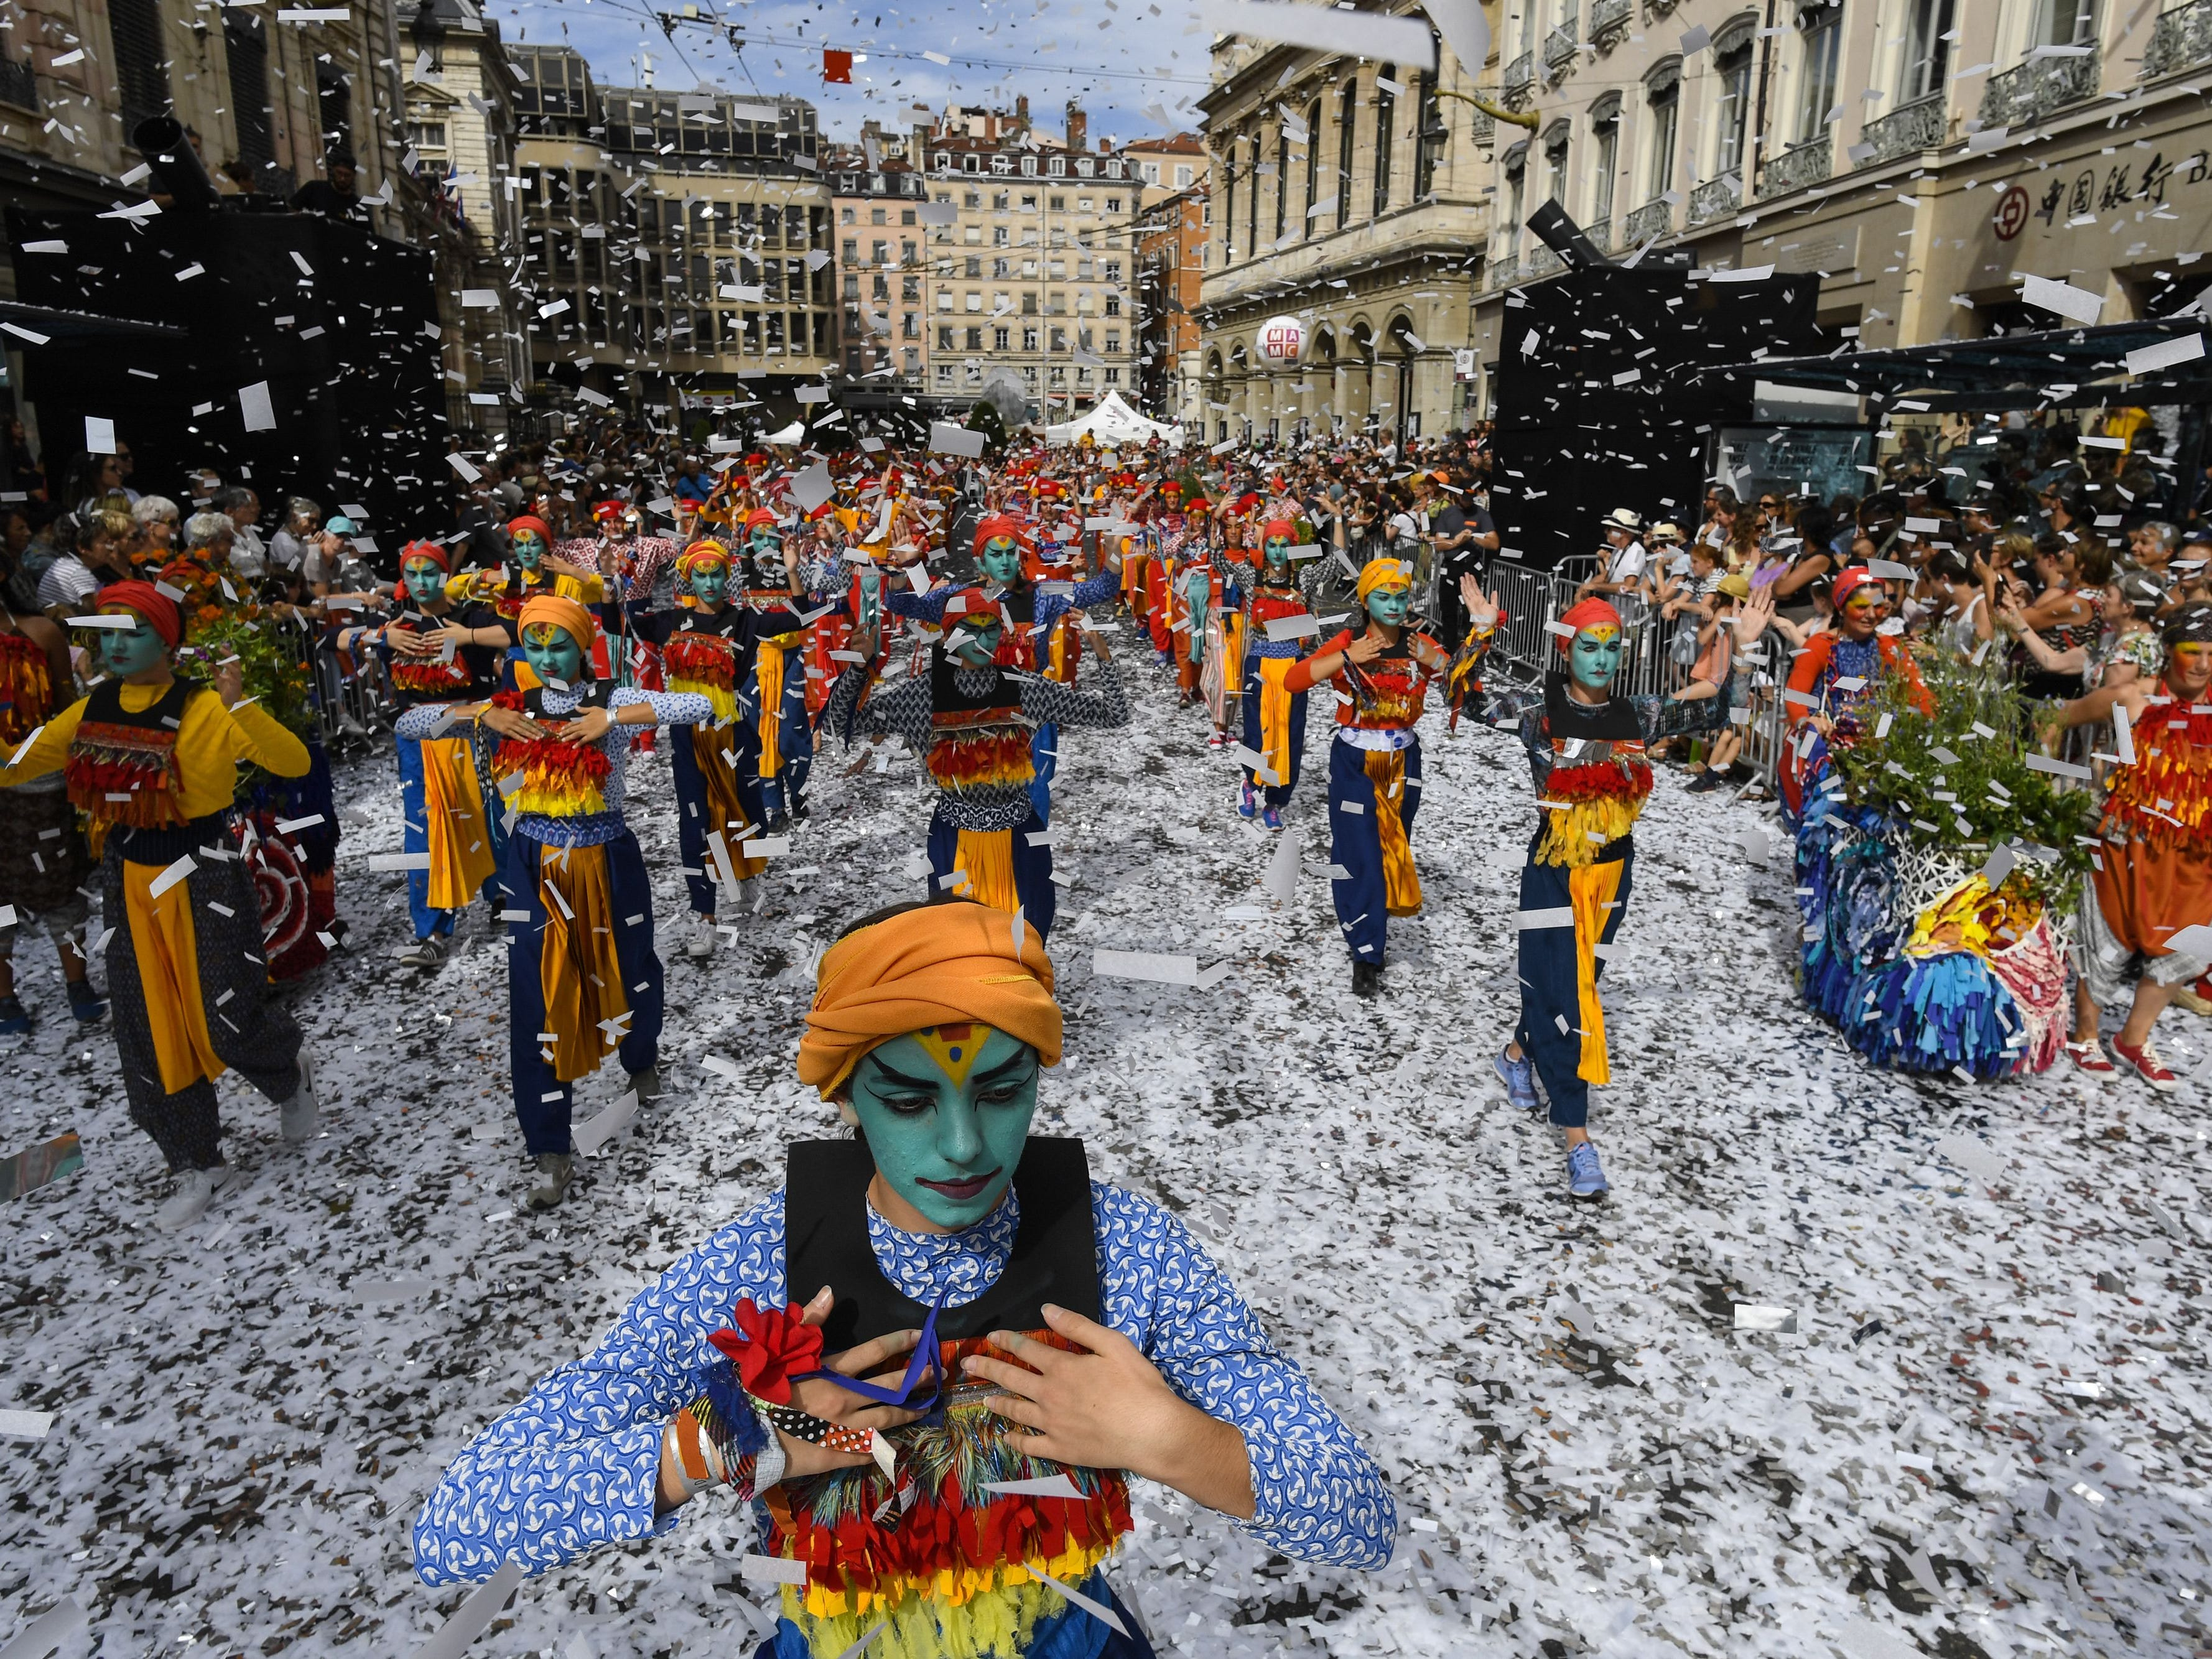 Dancers perform during a parade on the theme of peace for the 18th edition of the Lyon Dance Biennial on a street in Lyon, eastern France on September 16, 2018.